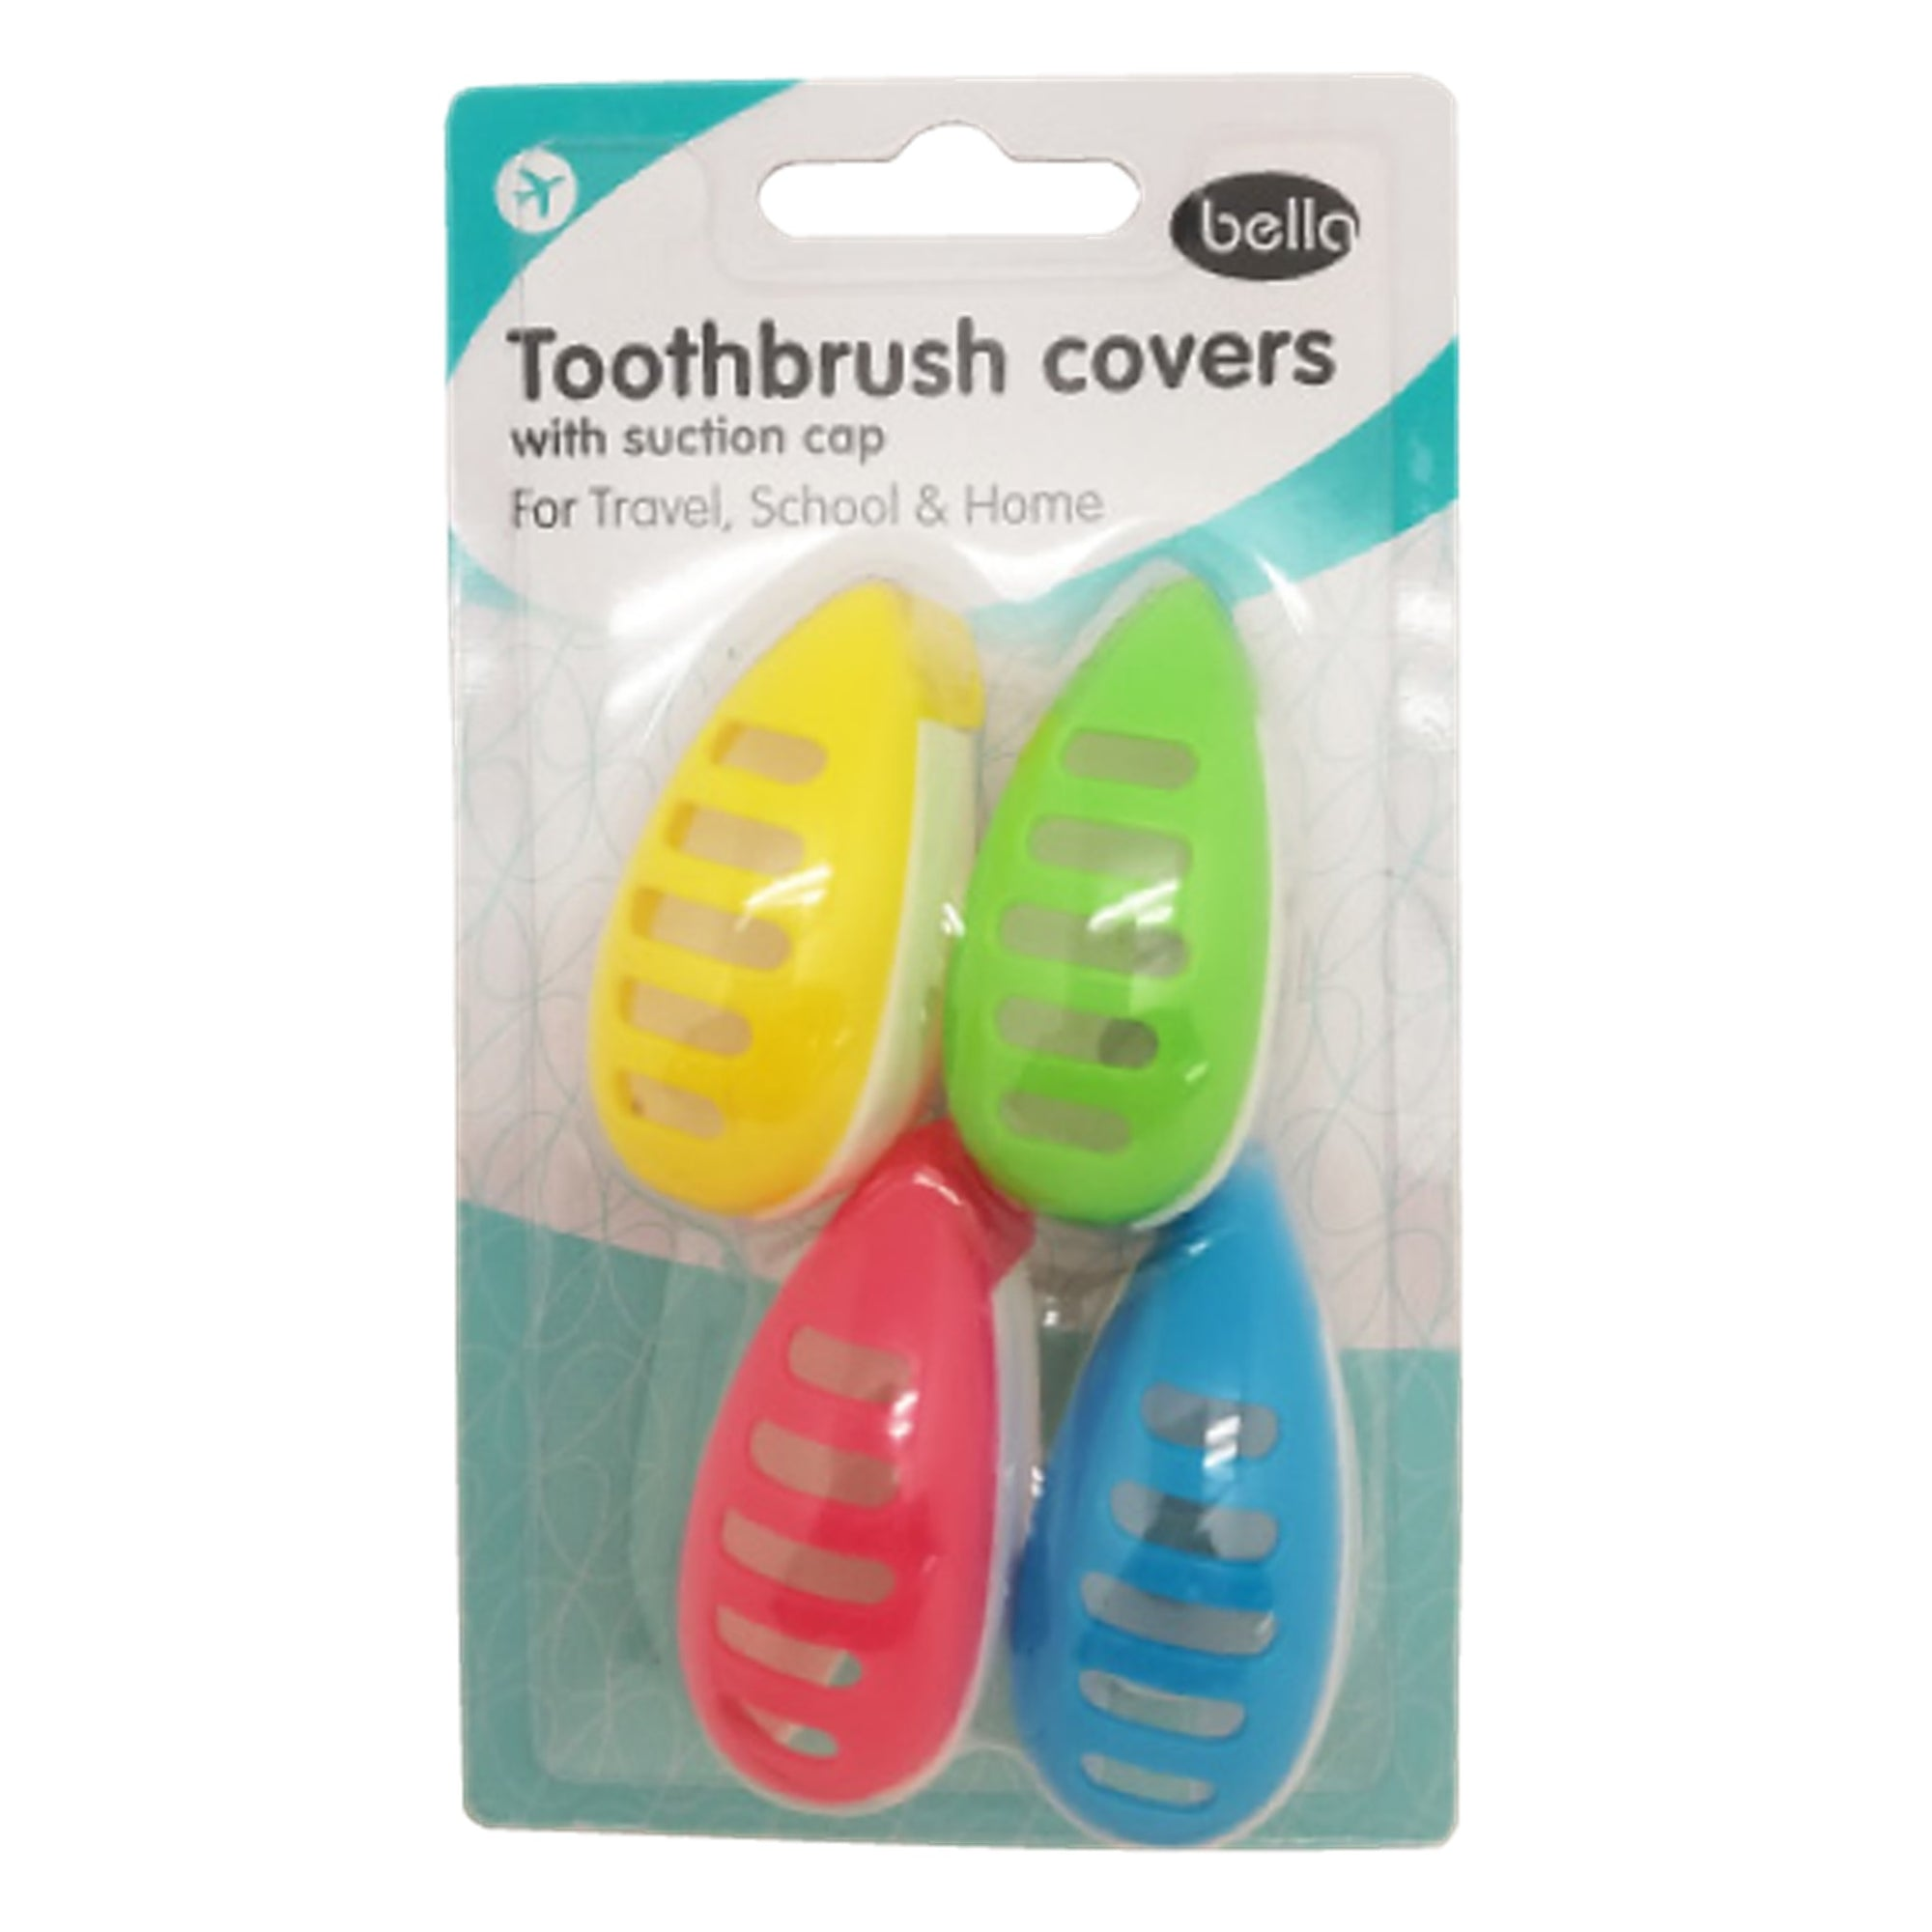 Bella Toothbrush Cover 4Pk